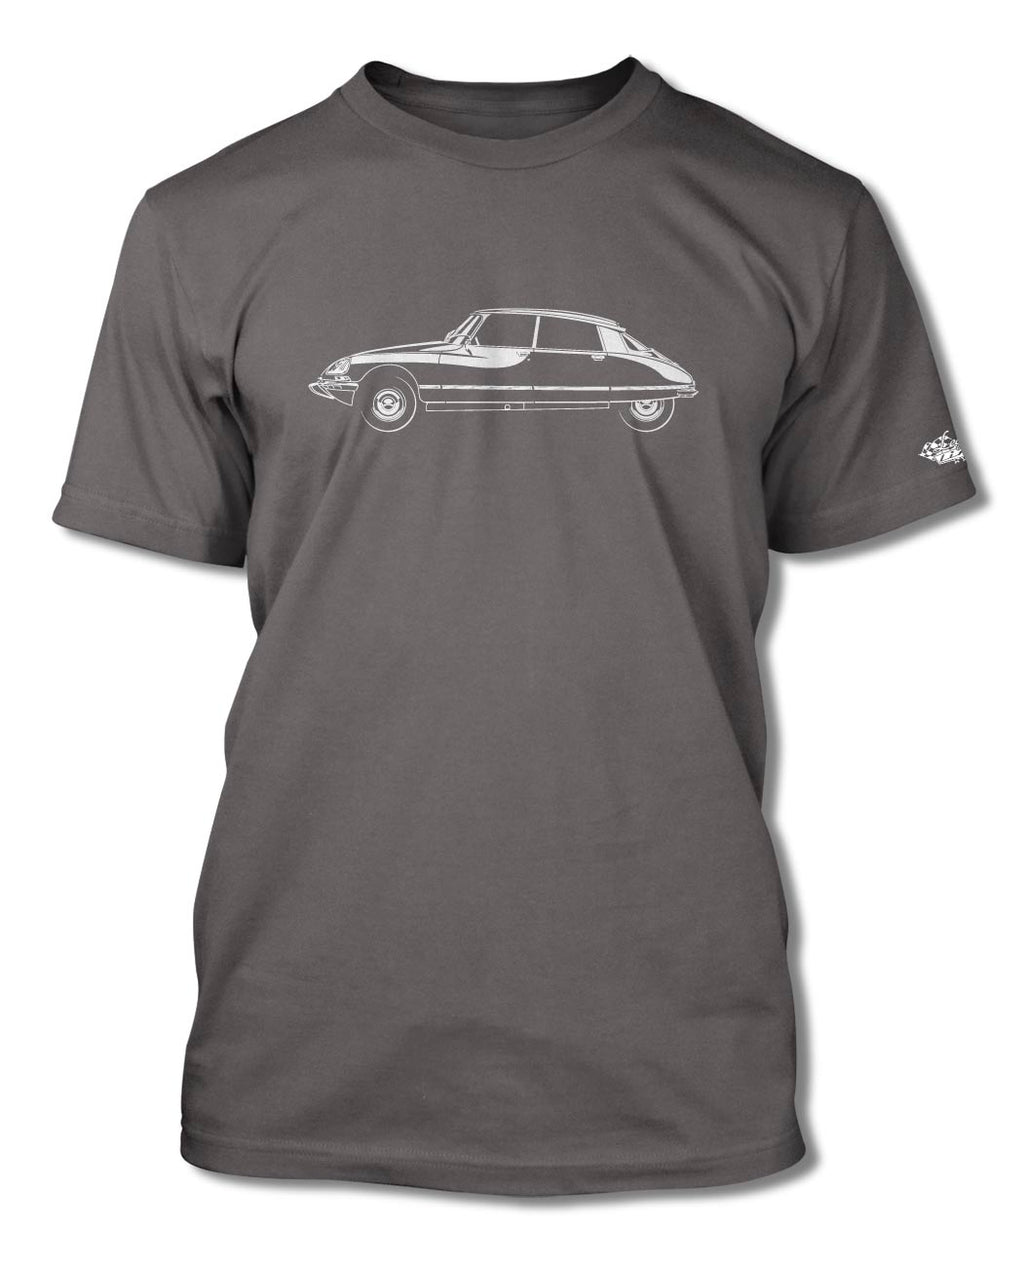 Citroen DS ID 1968 - 1976 Sedan 4 doors T-Shirt - Men - Side View